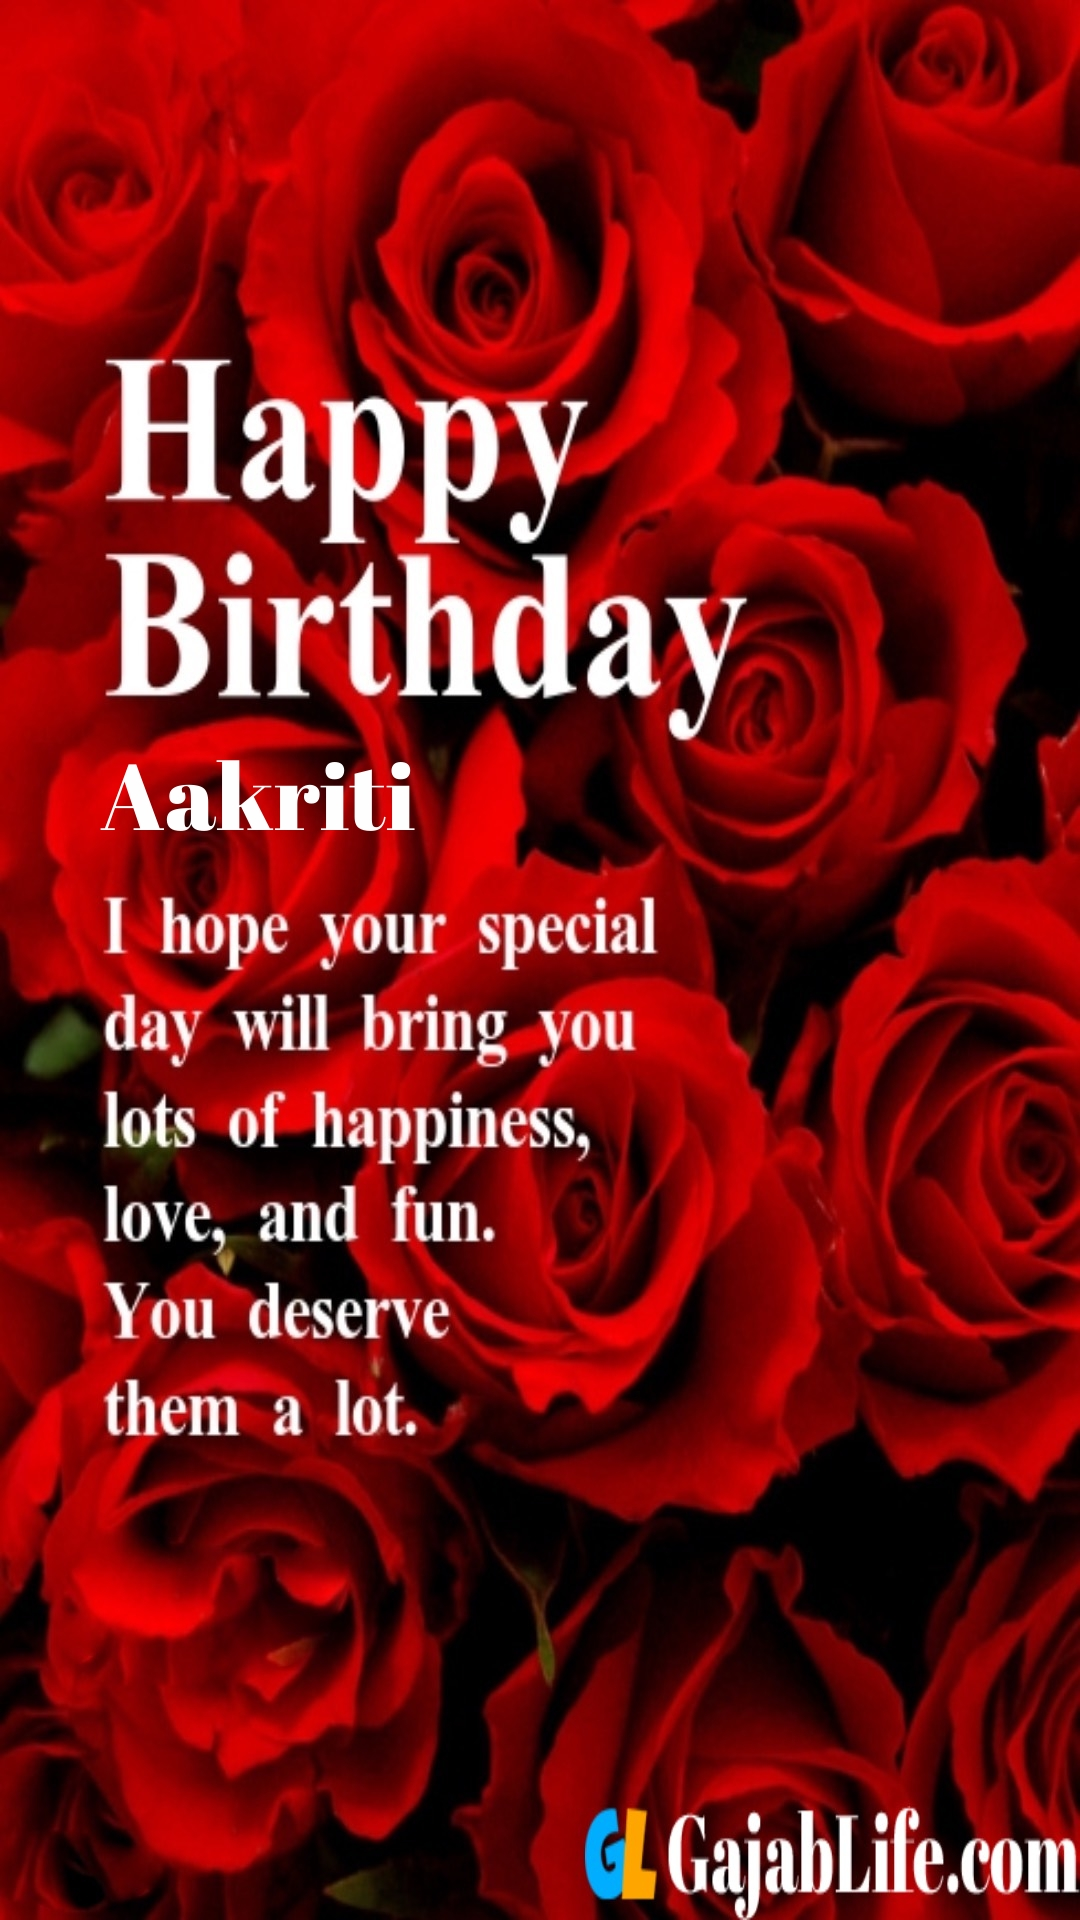 Aakriti birthday greeting card with rose & love